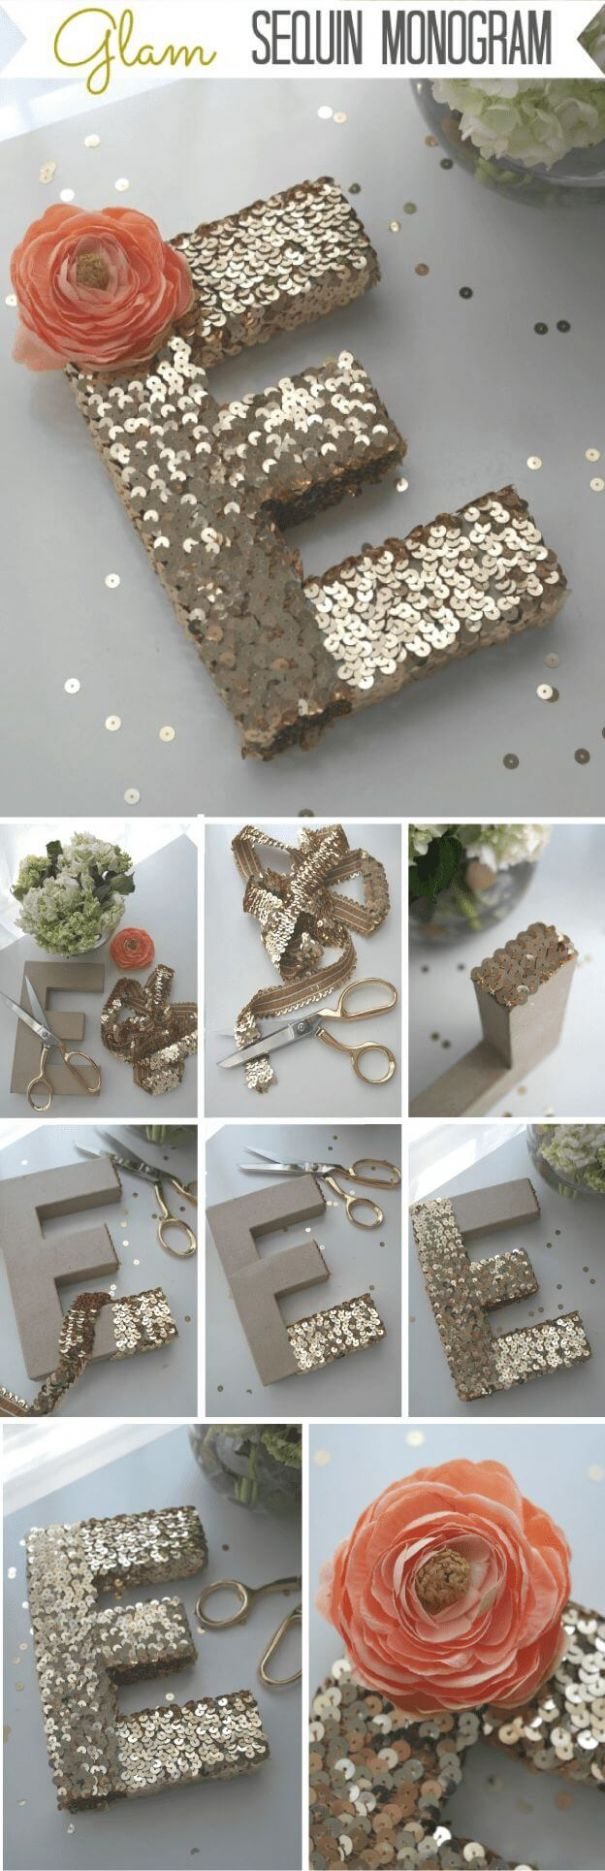 9 Best DIY Dollar Store Home Decor Ideas and Designs for 9 - diy home decor ideas dollar tree